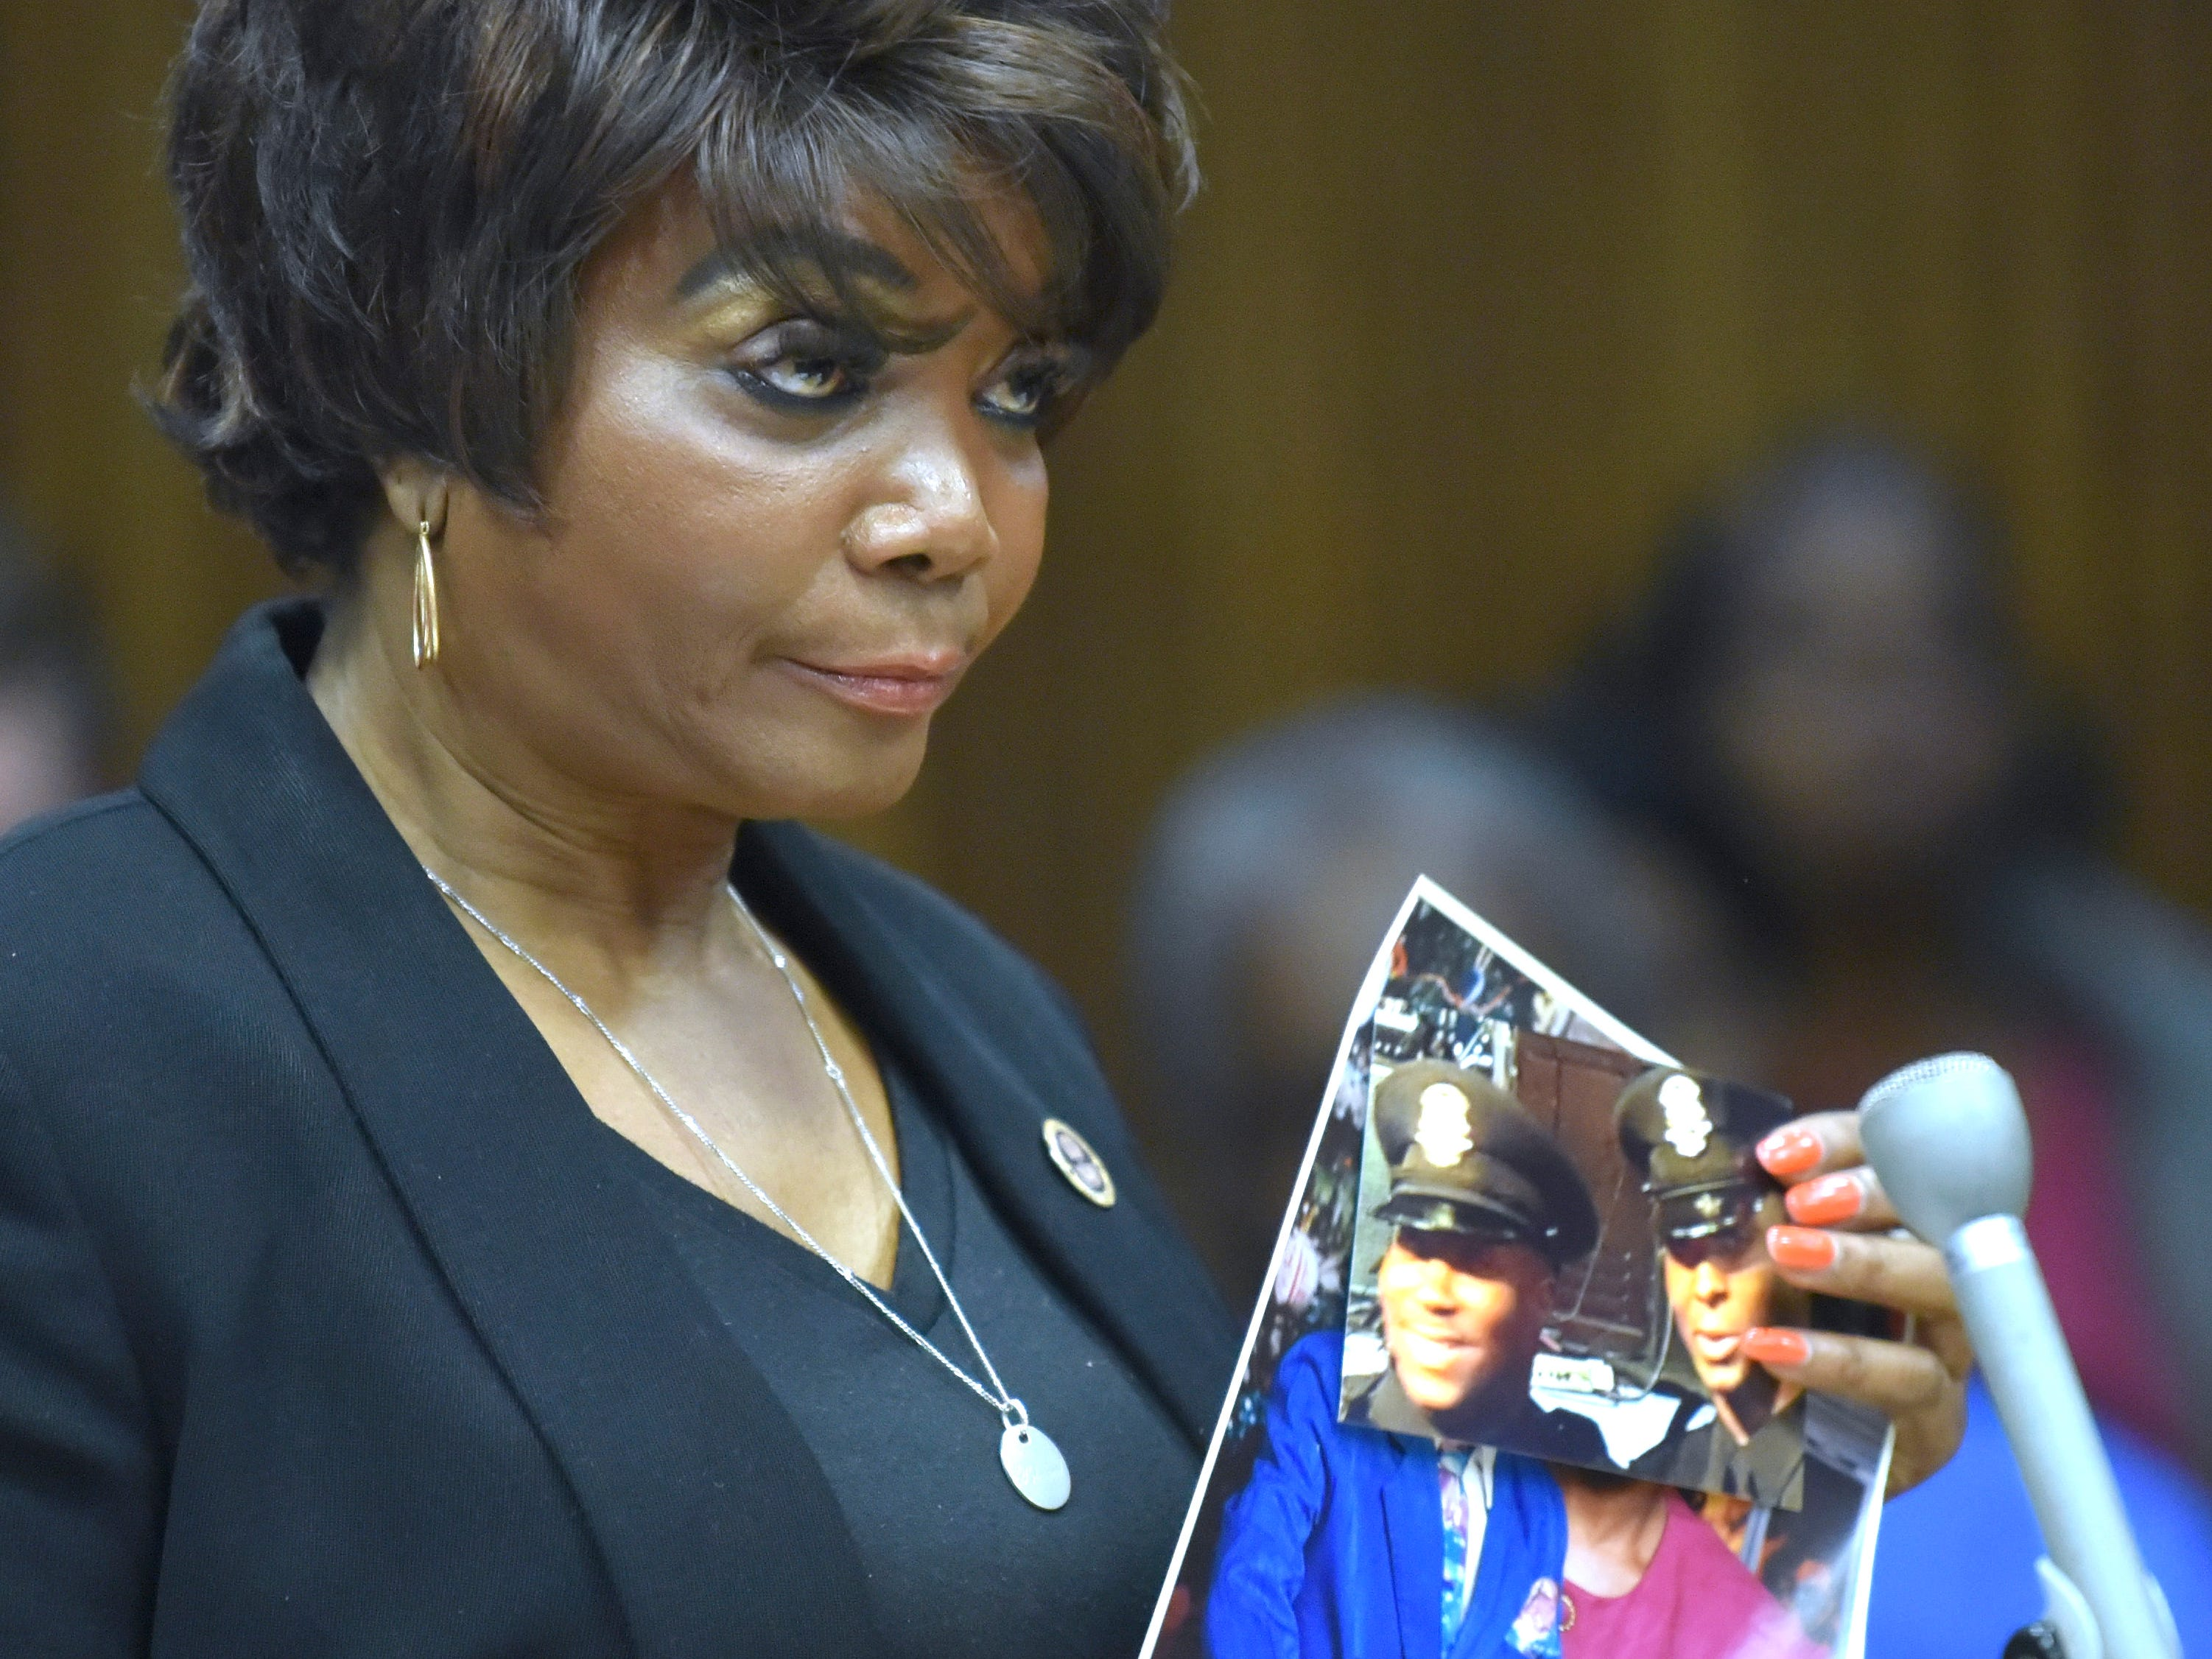 Glenn Doss Jr's grandmother Beretha Bradley holds up a portrait of her son, Detroit Police Officer Glenn Doss Sr, left, and his slain Detroit Police Officer son, right, during her victim's impact statement.